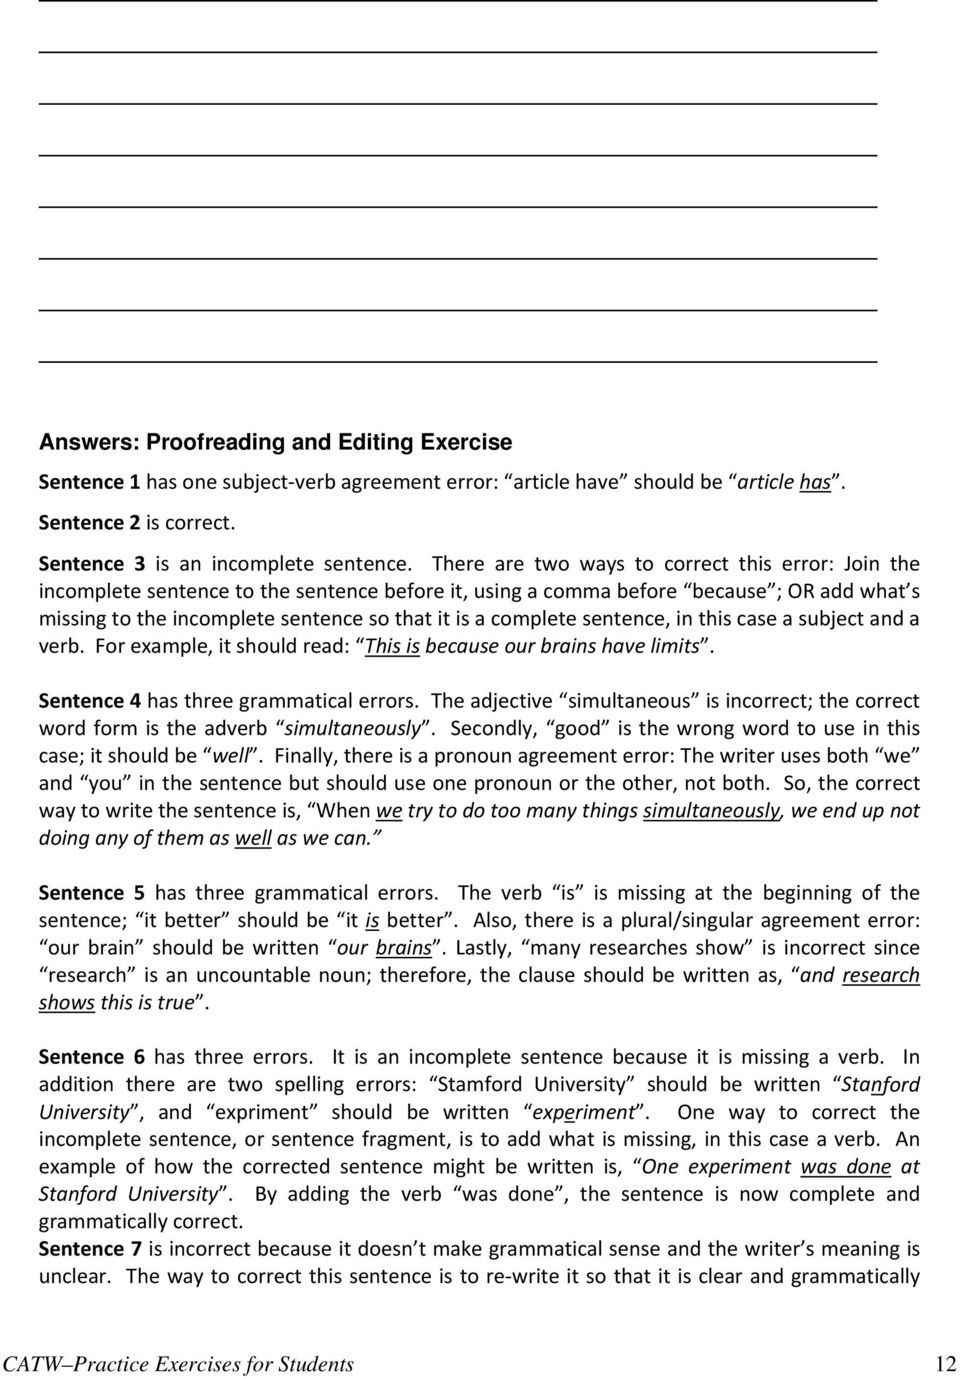 014 Essay Example Catw Samples What Is Critical Analysis Pa Beautiful Topics Practice 960